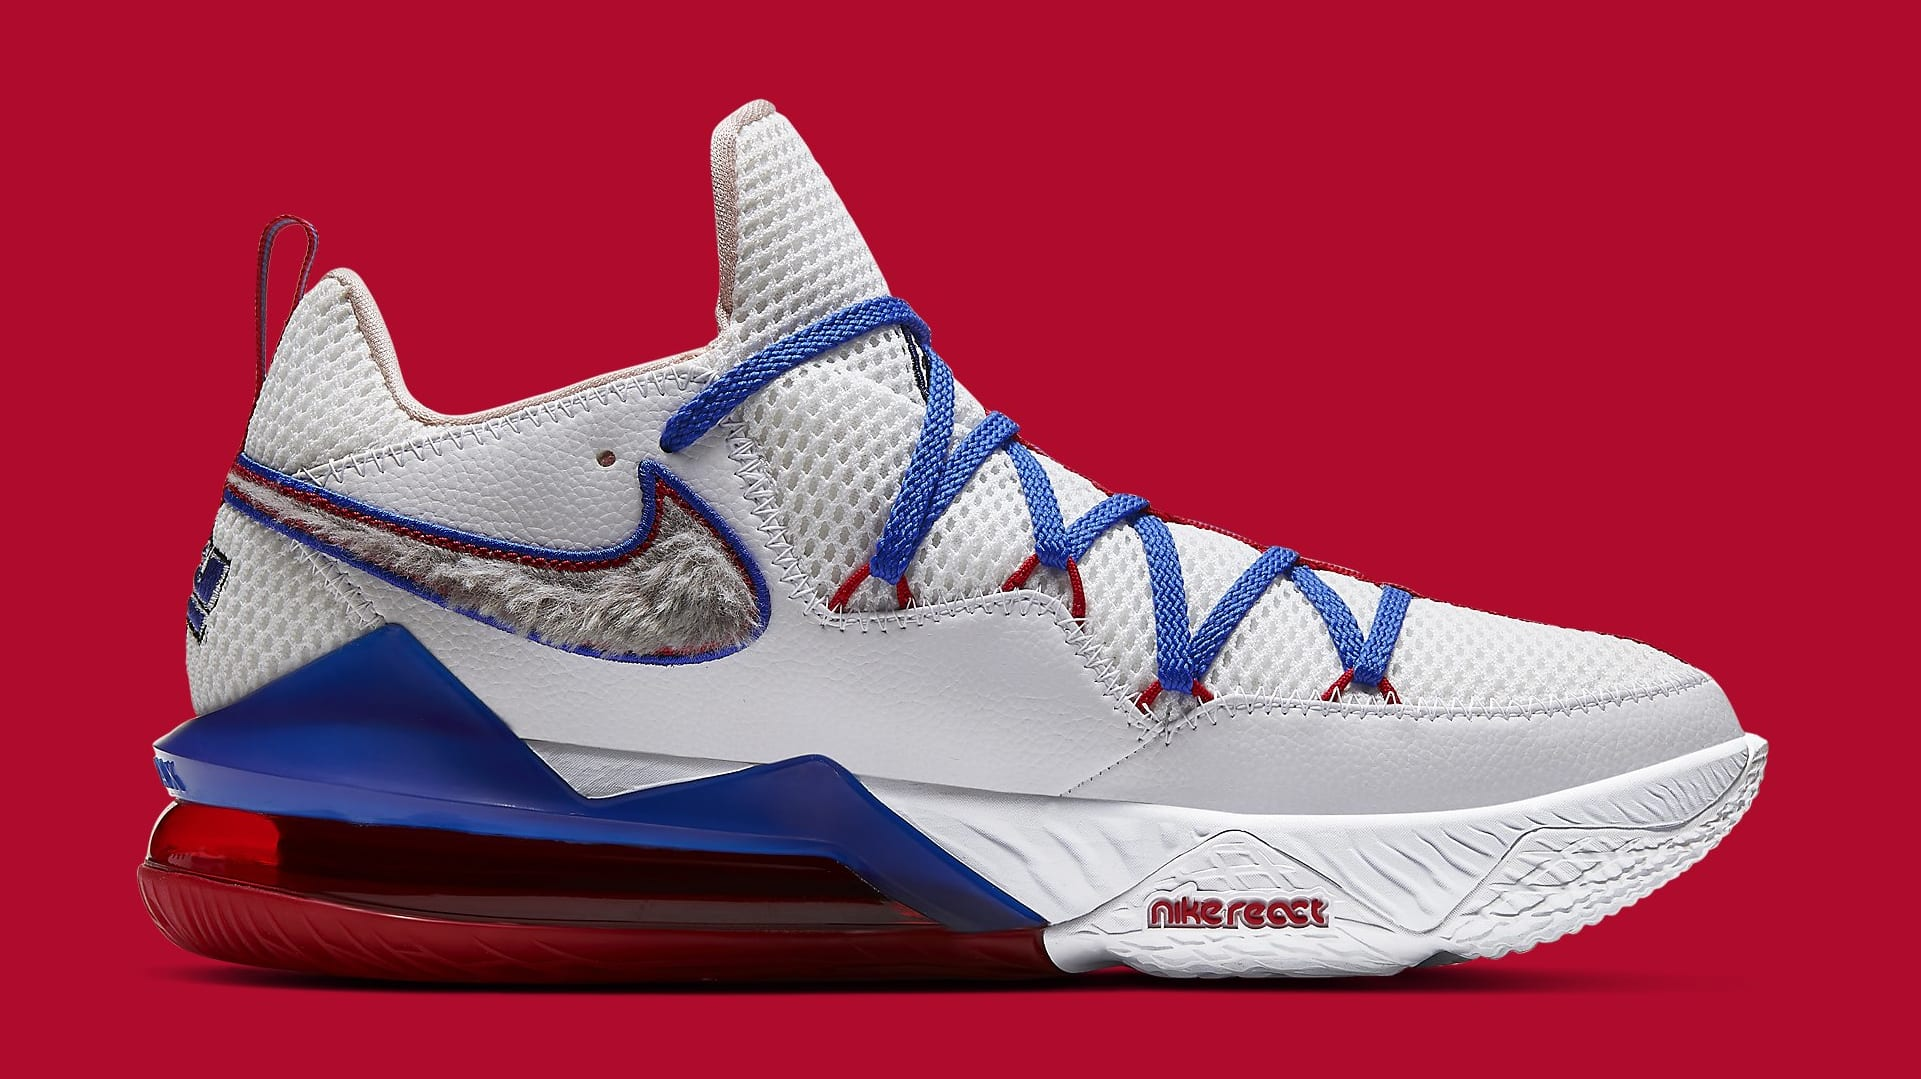 nike-lebron-17-low-toon-squad-cd5007-100-medial